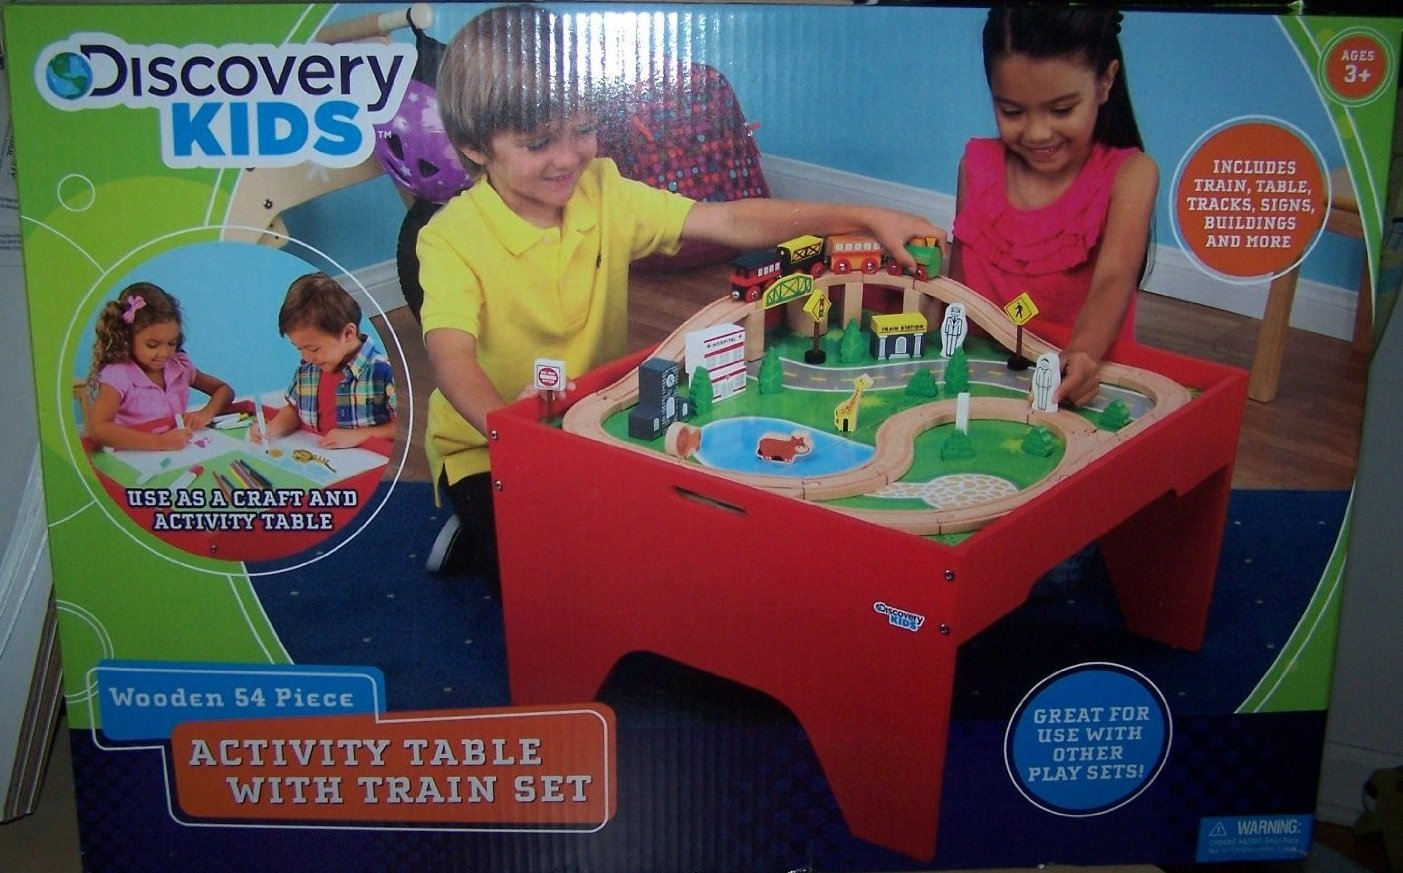 Amazon.com: Discovery Kids Wooden 54 Piece Activity Table With Train Set:  Toys U0026 Games